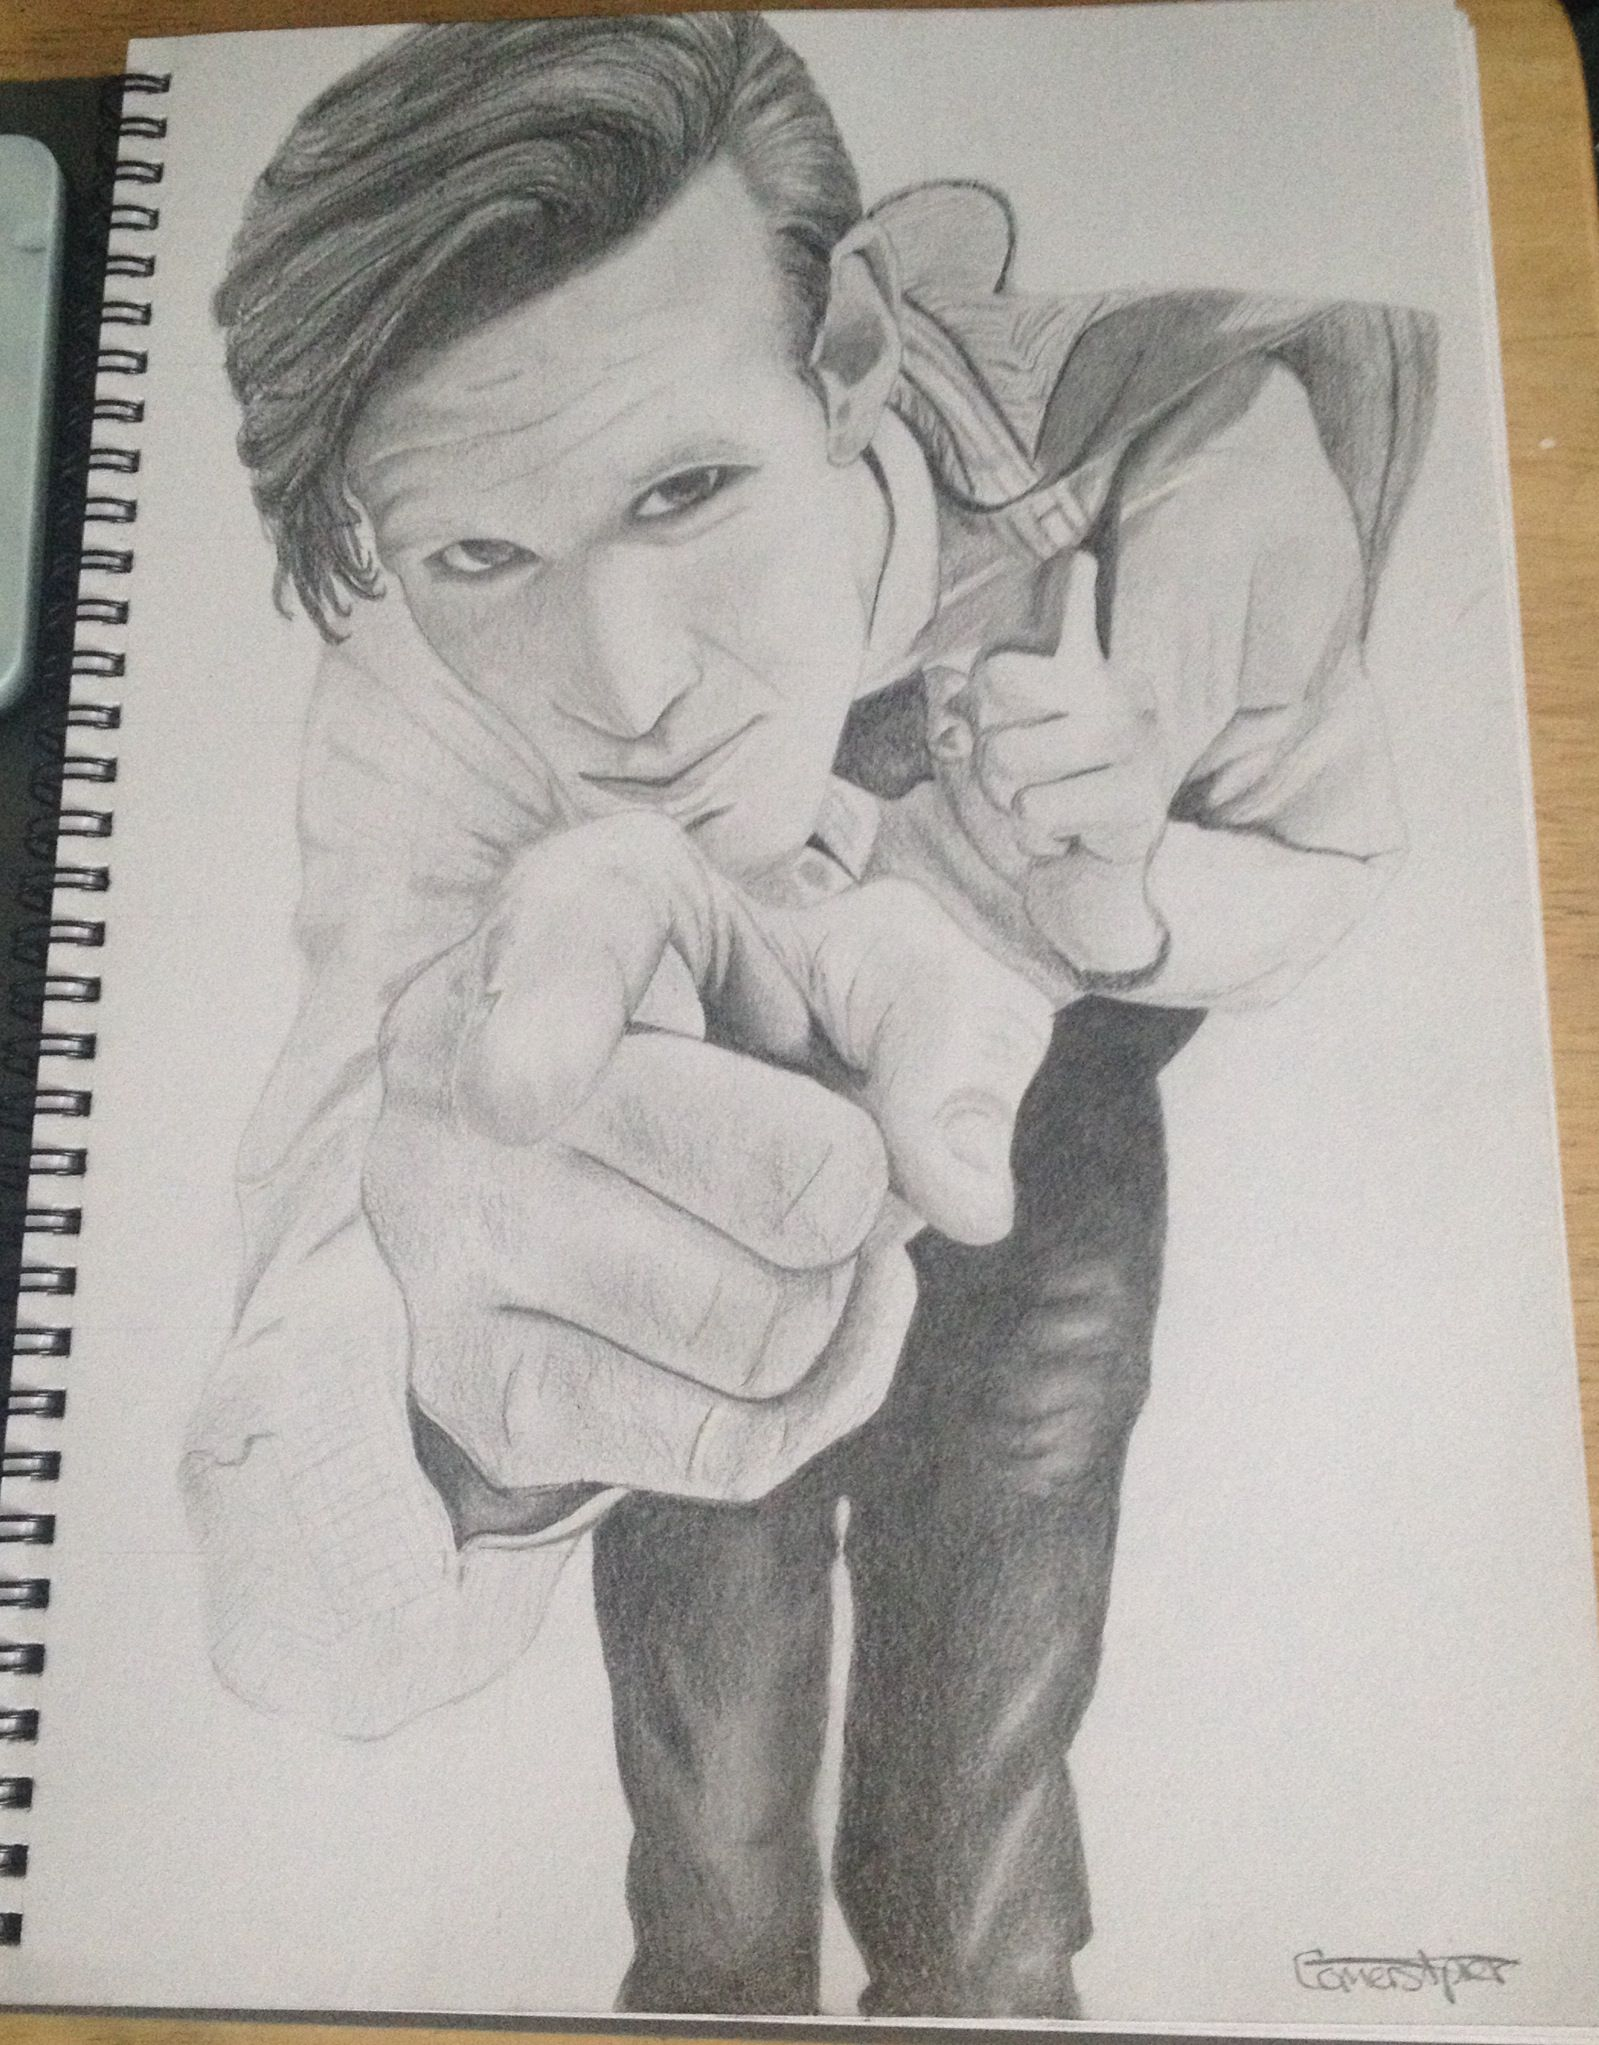 Matt smith doctor who drawing | Doctor who | Pinterest